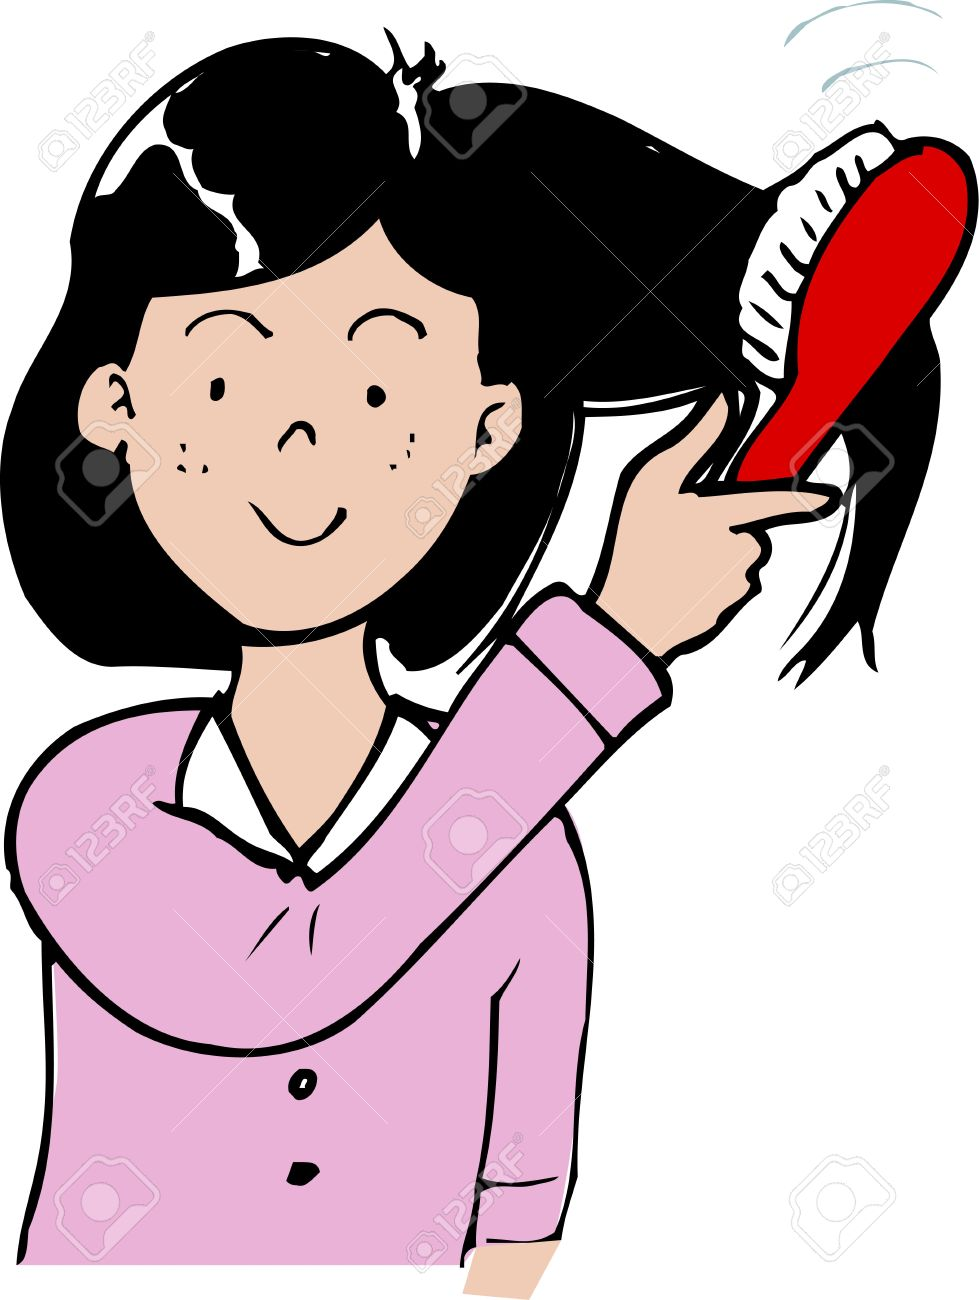 I Comb My Hair Clipart.